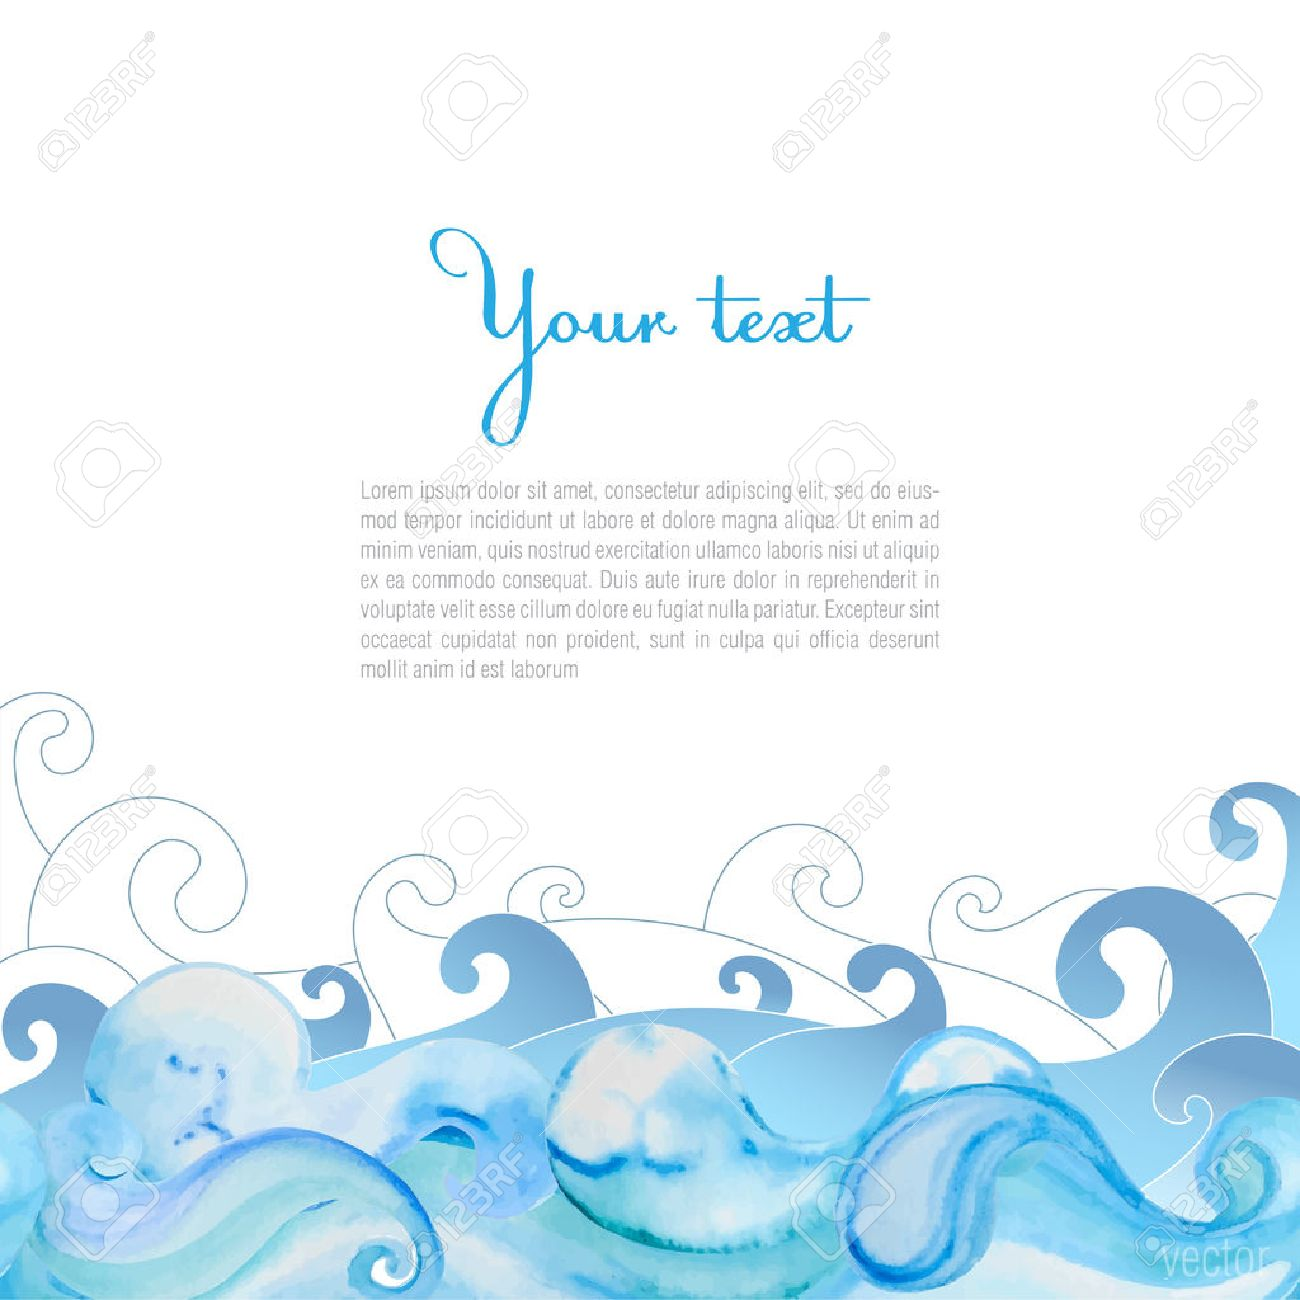 tumblr watercolor png - watercolor sea turtle clip art PNG image with  transparent background   TOPpng